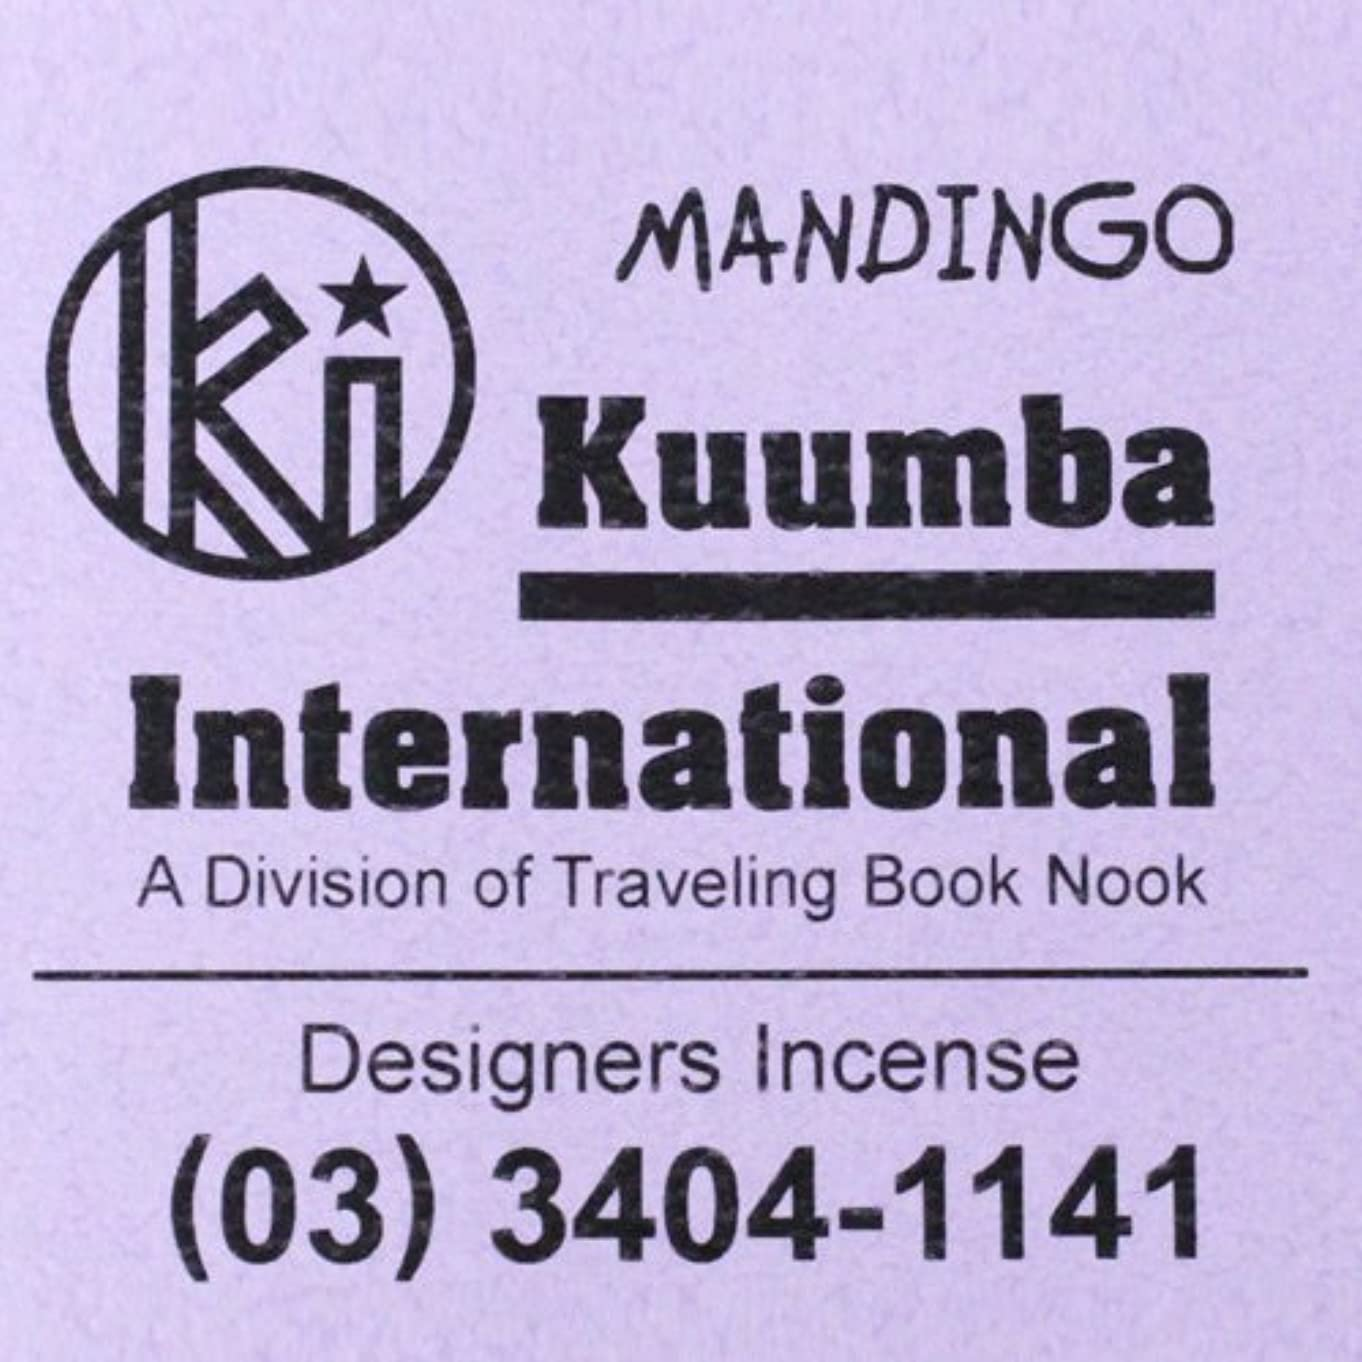 大脳傭兵命令的(クンバ) KUUMBA『incense』(MANDINGO) (Regular size)